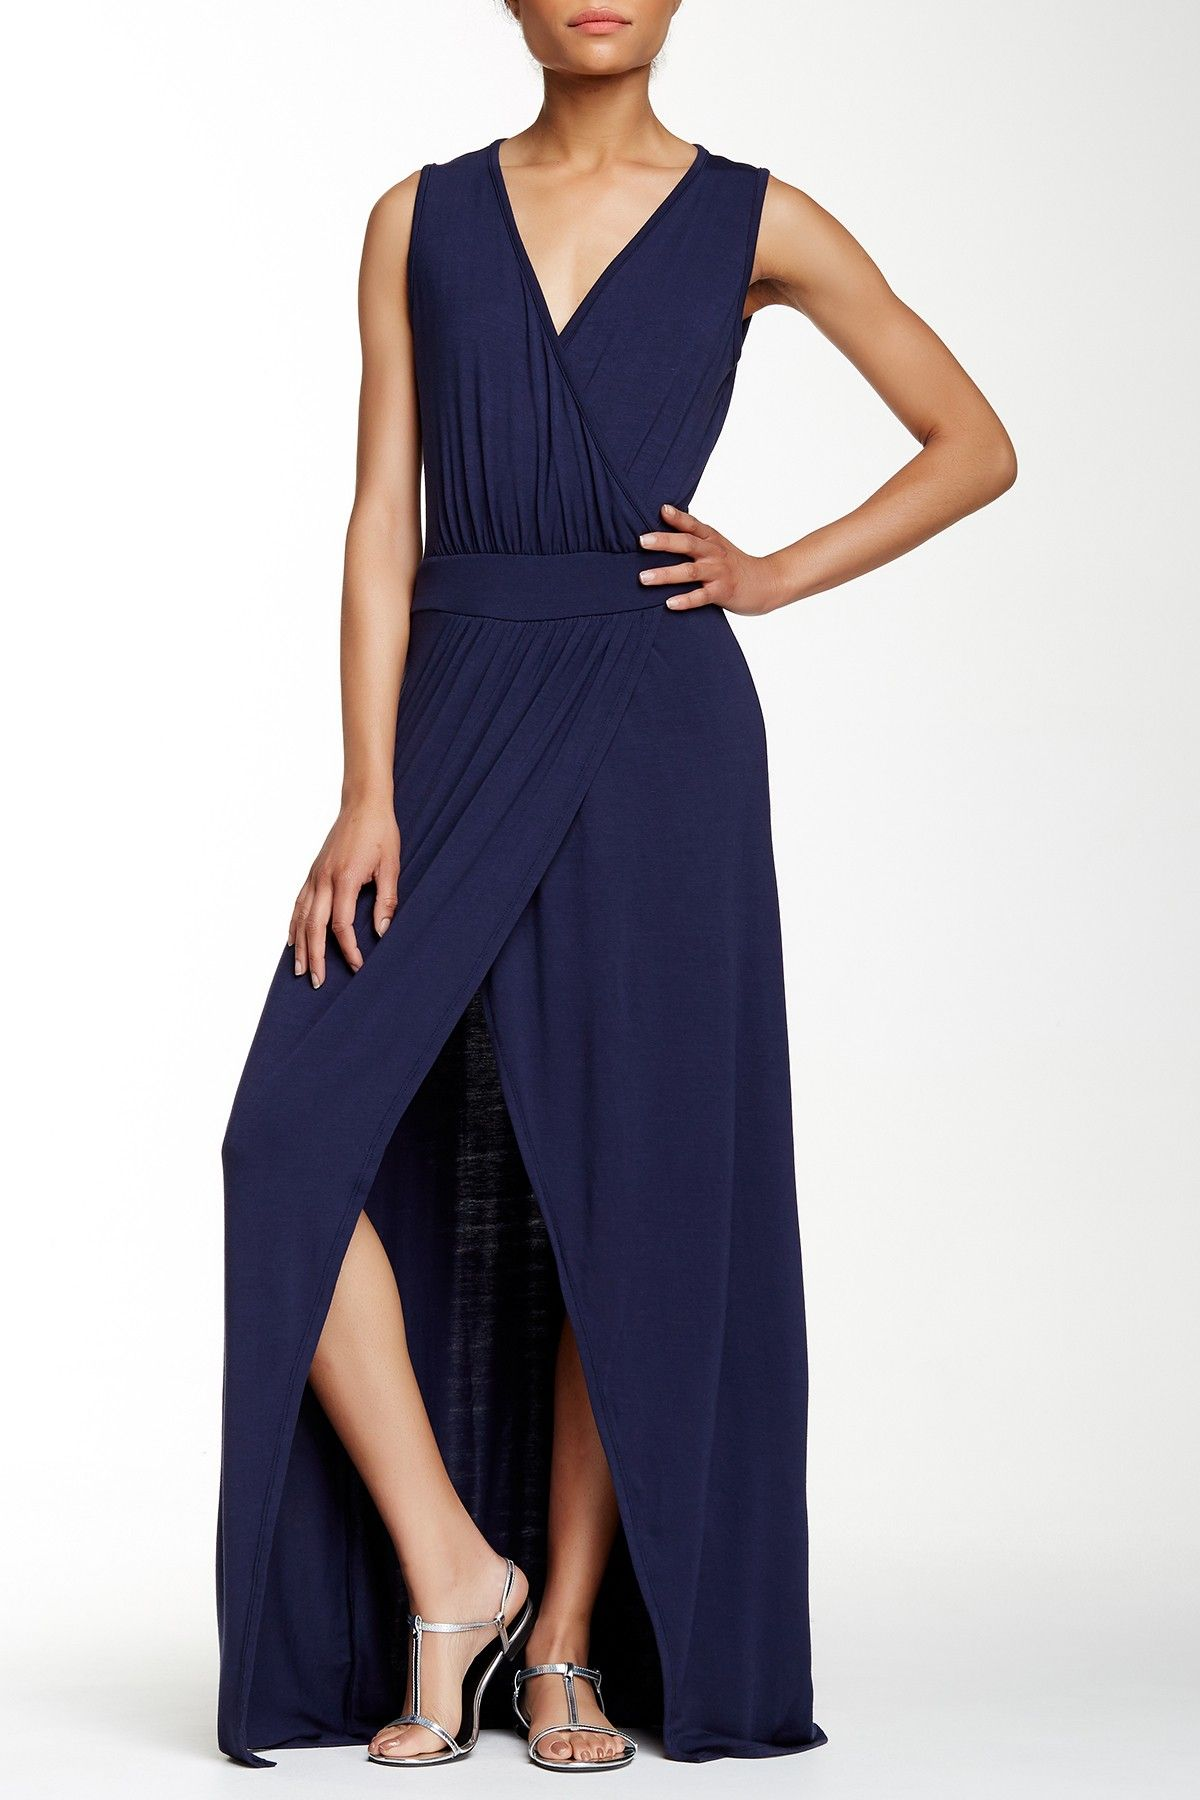 0821ad995d Sleeveless Faux Wrap Maxi Dress by Loveappella on  nordstrom rack